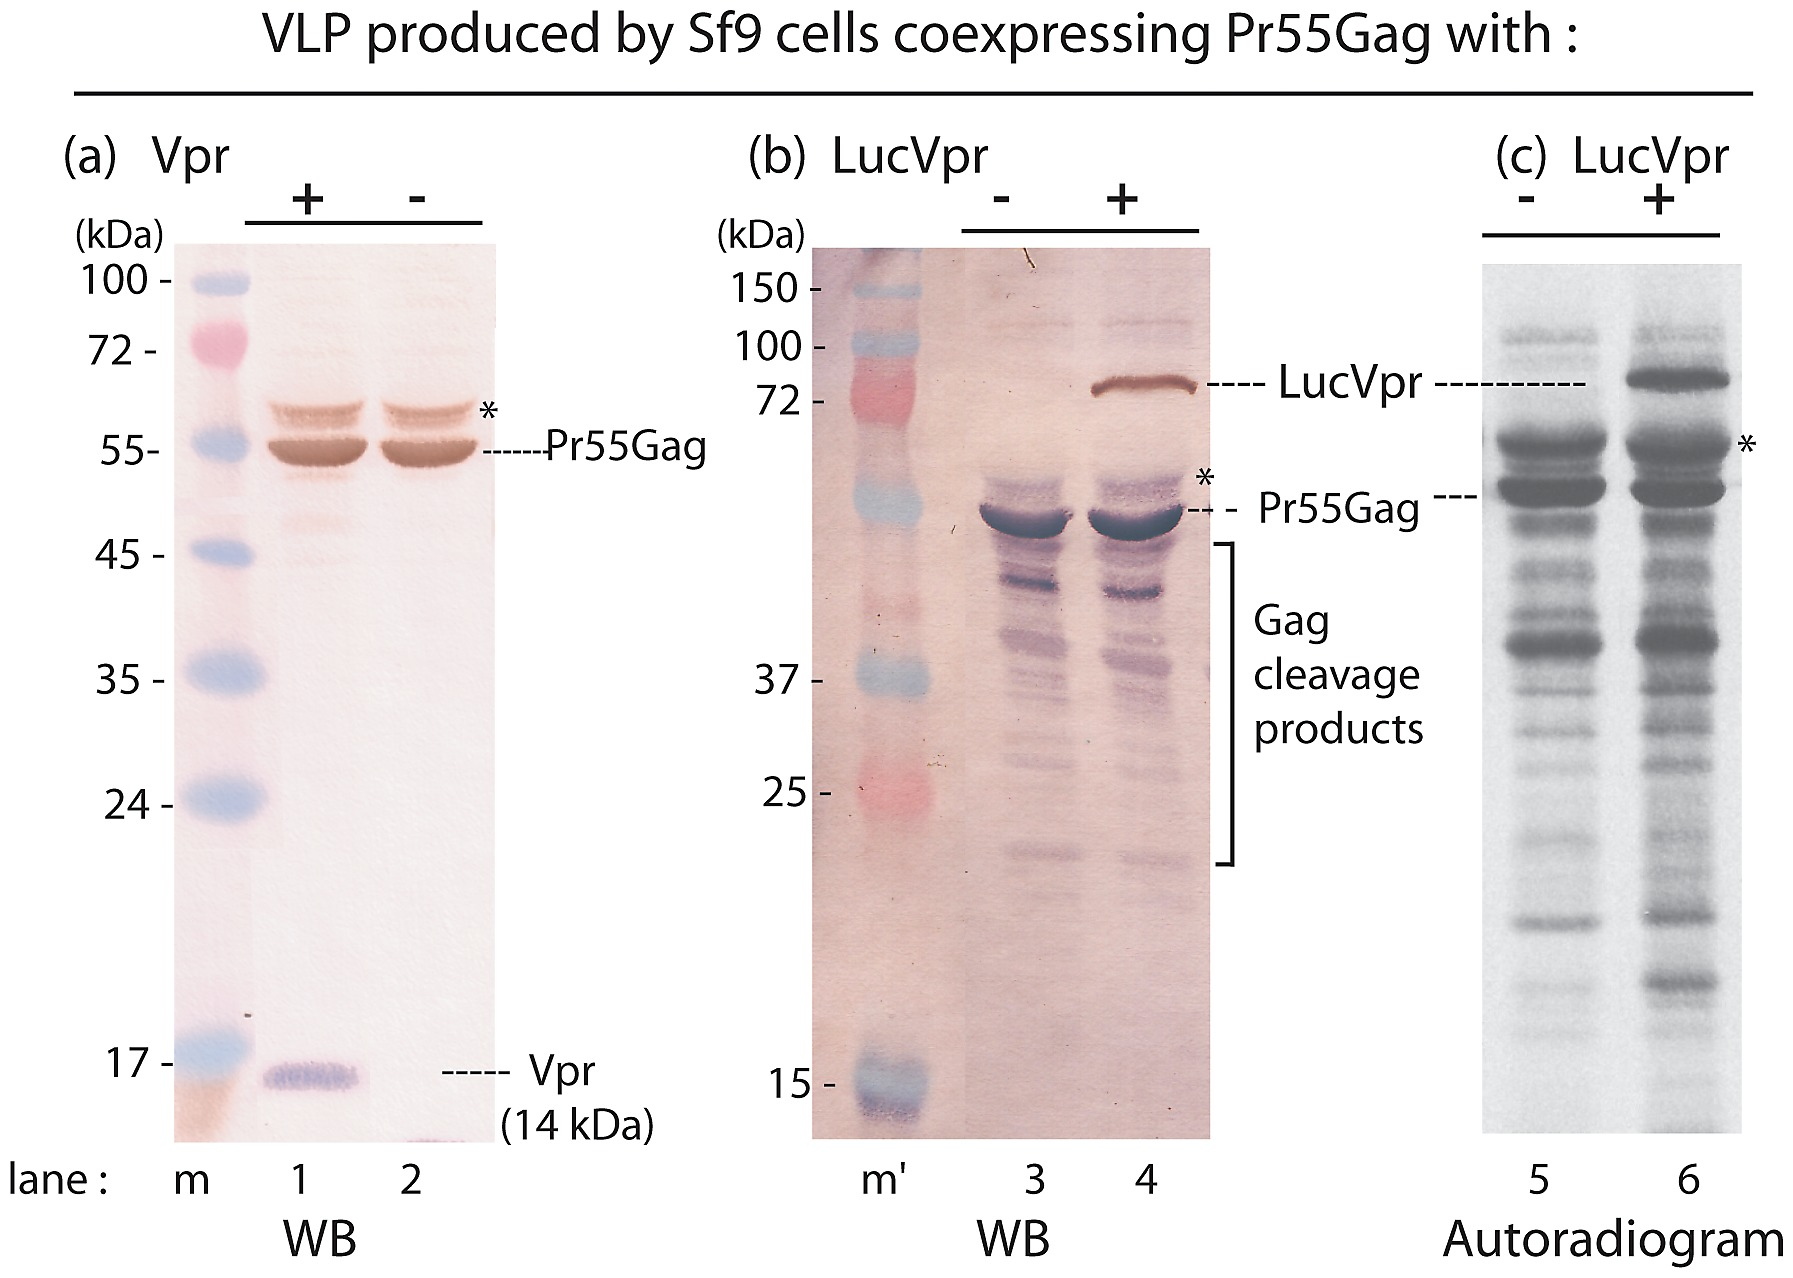 Packaging Of Vpr And LucVpr Into HIV 1 VLP Produced In Sf9 Cells